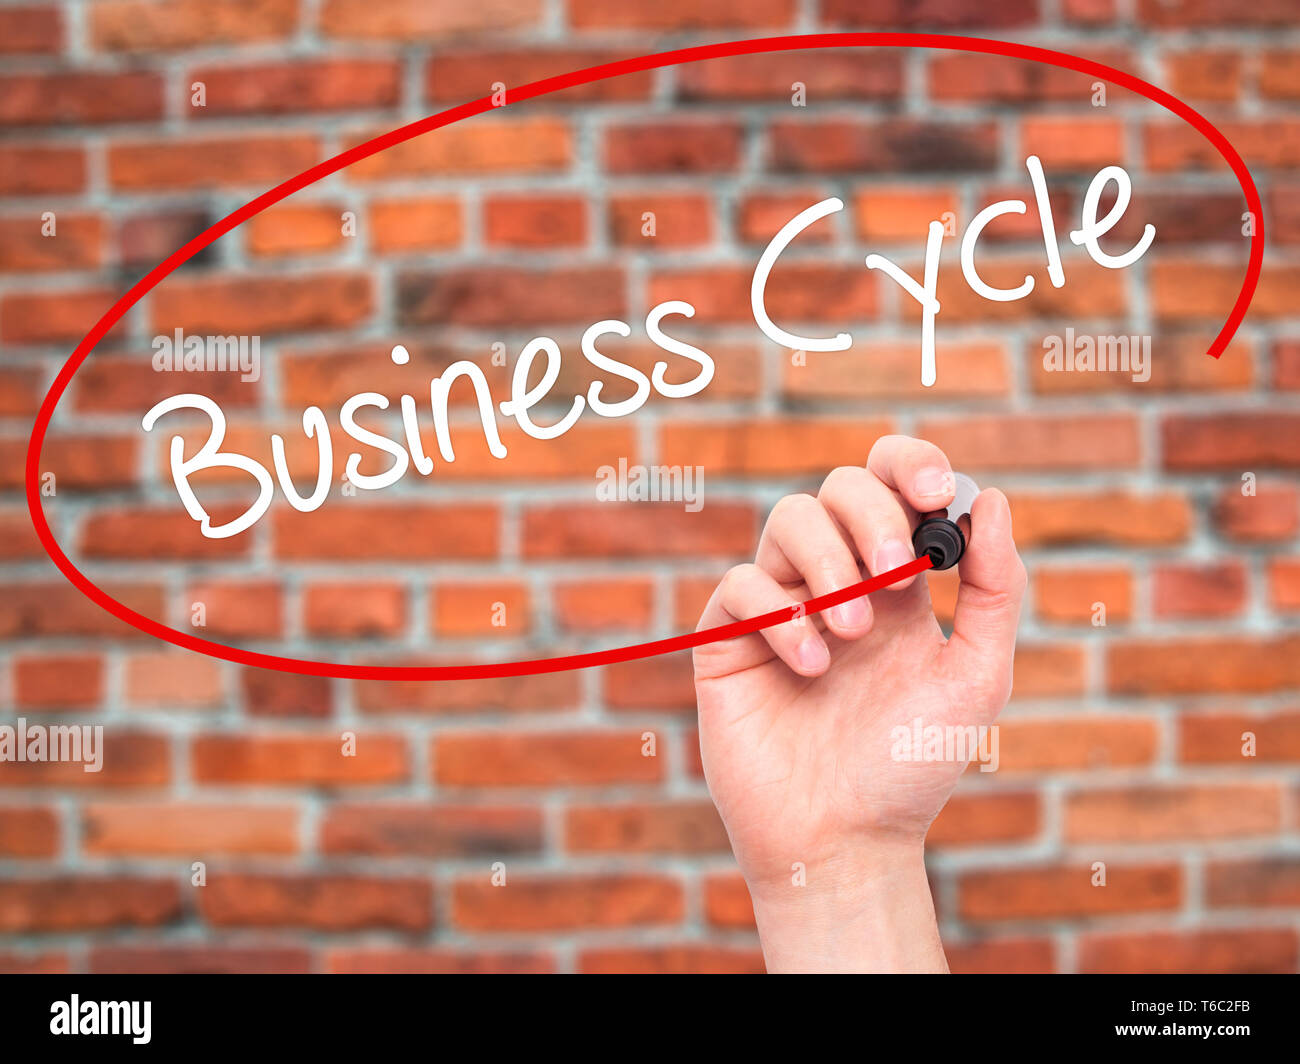 Man Hand writing Business Cycle with black marker on visual screen. - Stock Image